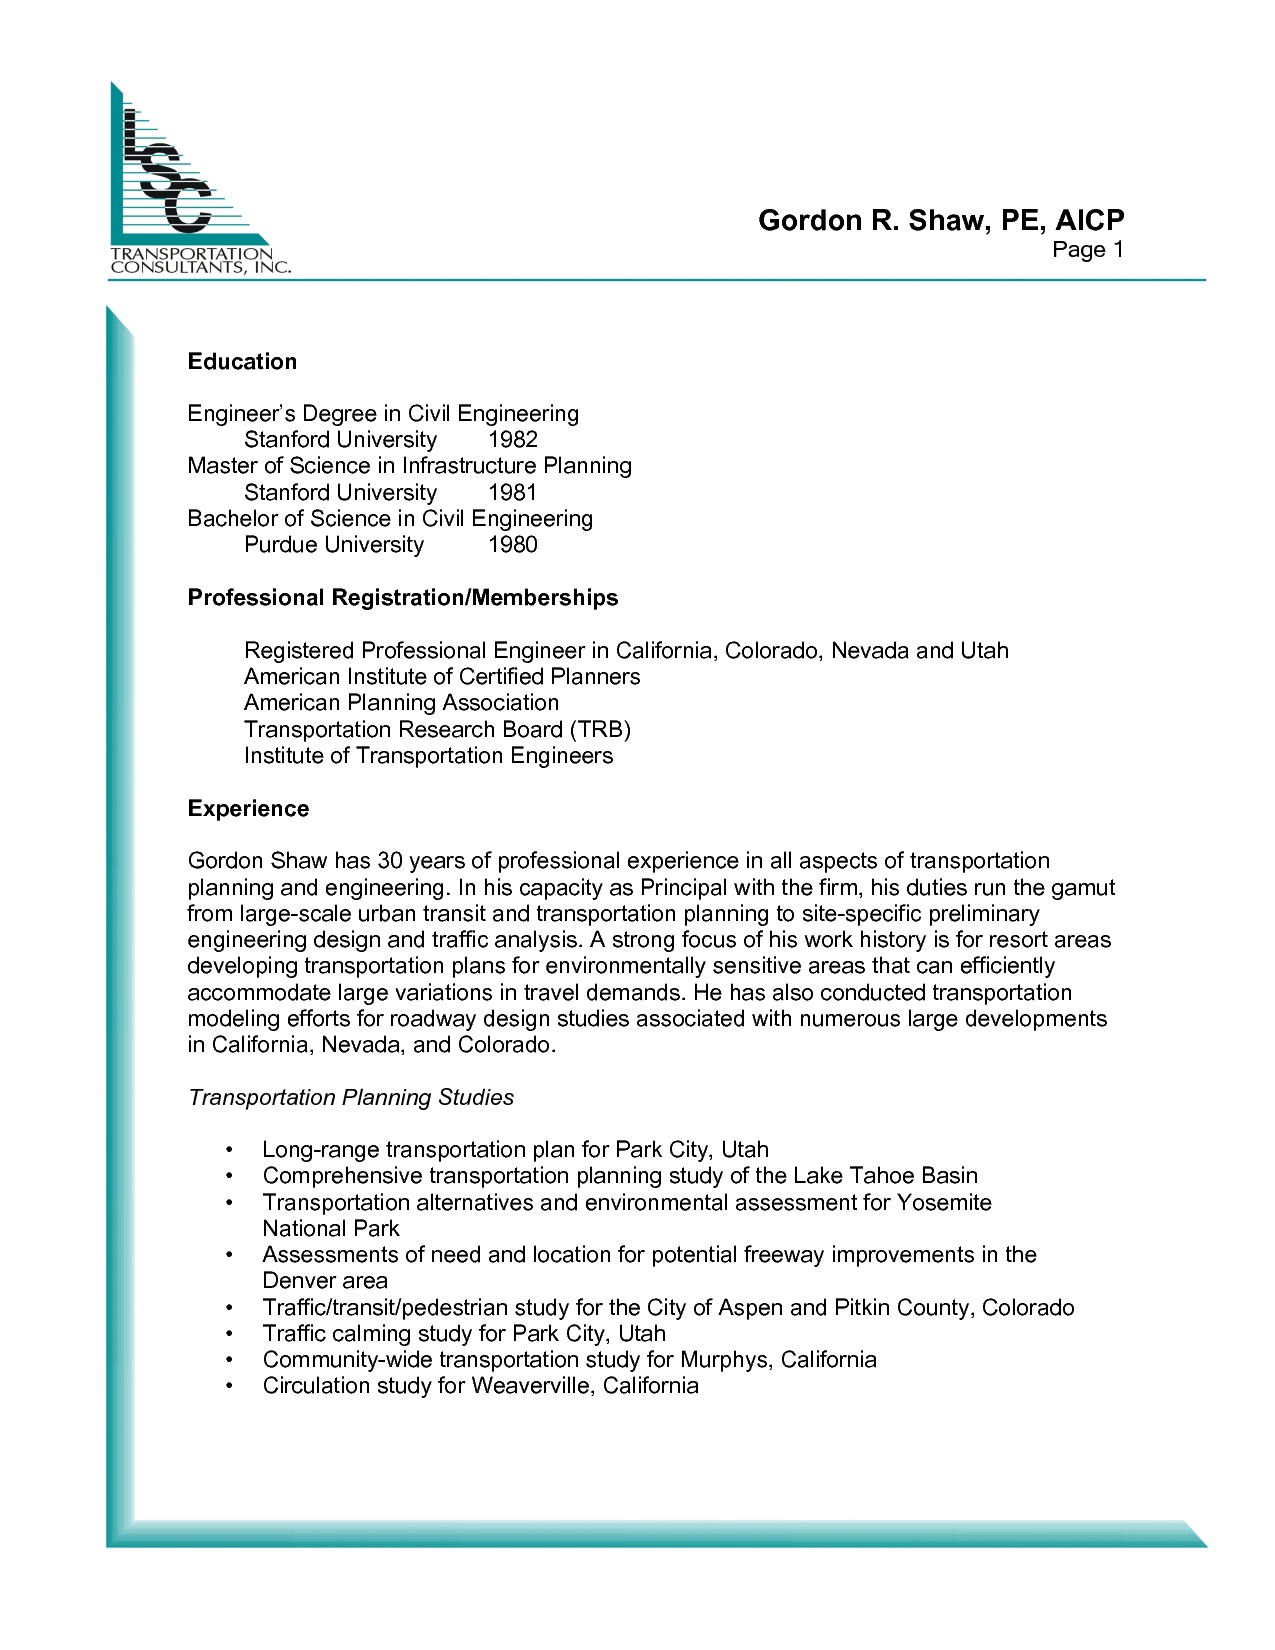 civil engineer resume sample httpwwwresumecareerinfocivil resume templates wordresume - Engineering Resume Templates Word